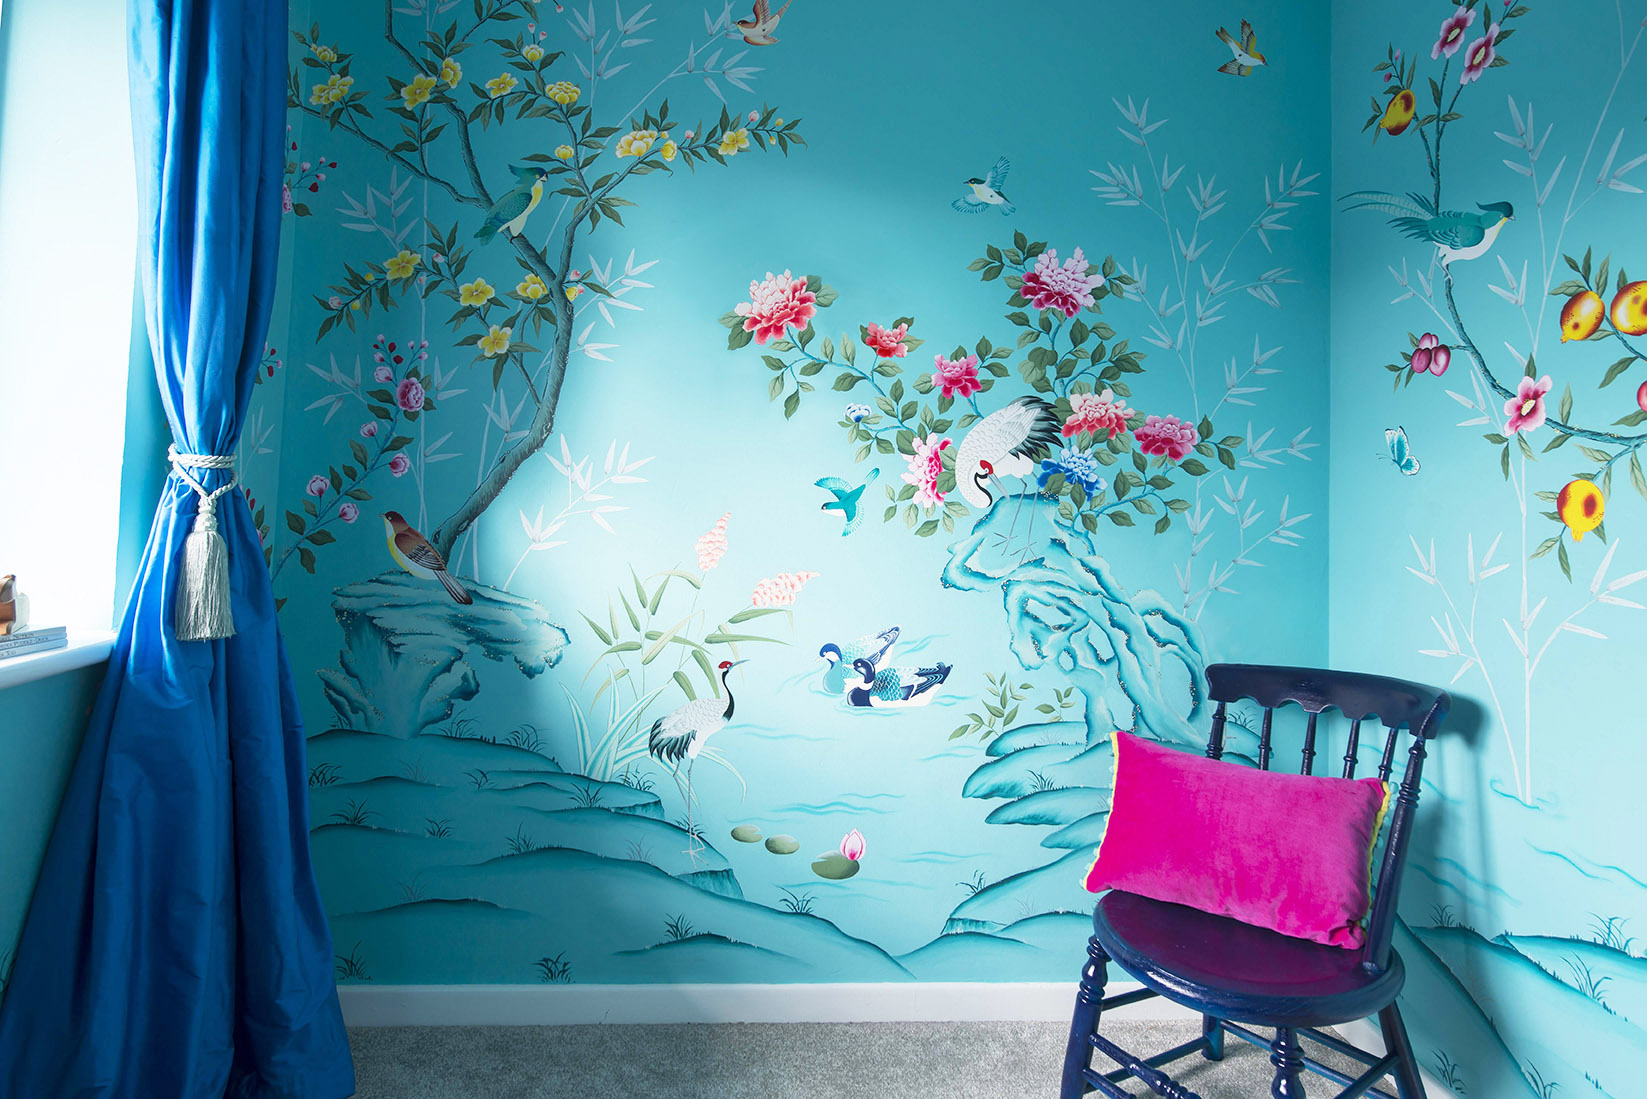 diane hill hand painted interiors turquoise chinoiserie mural nursery room